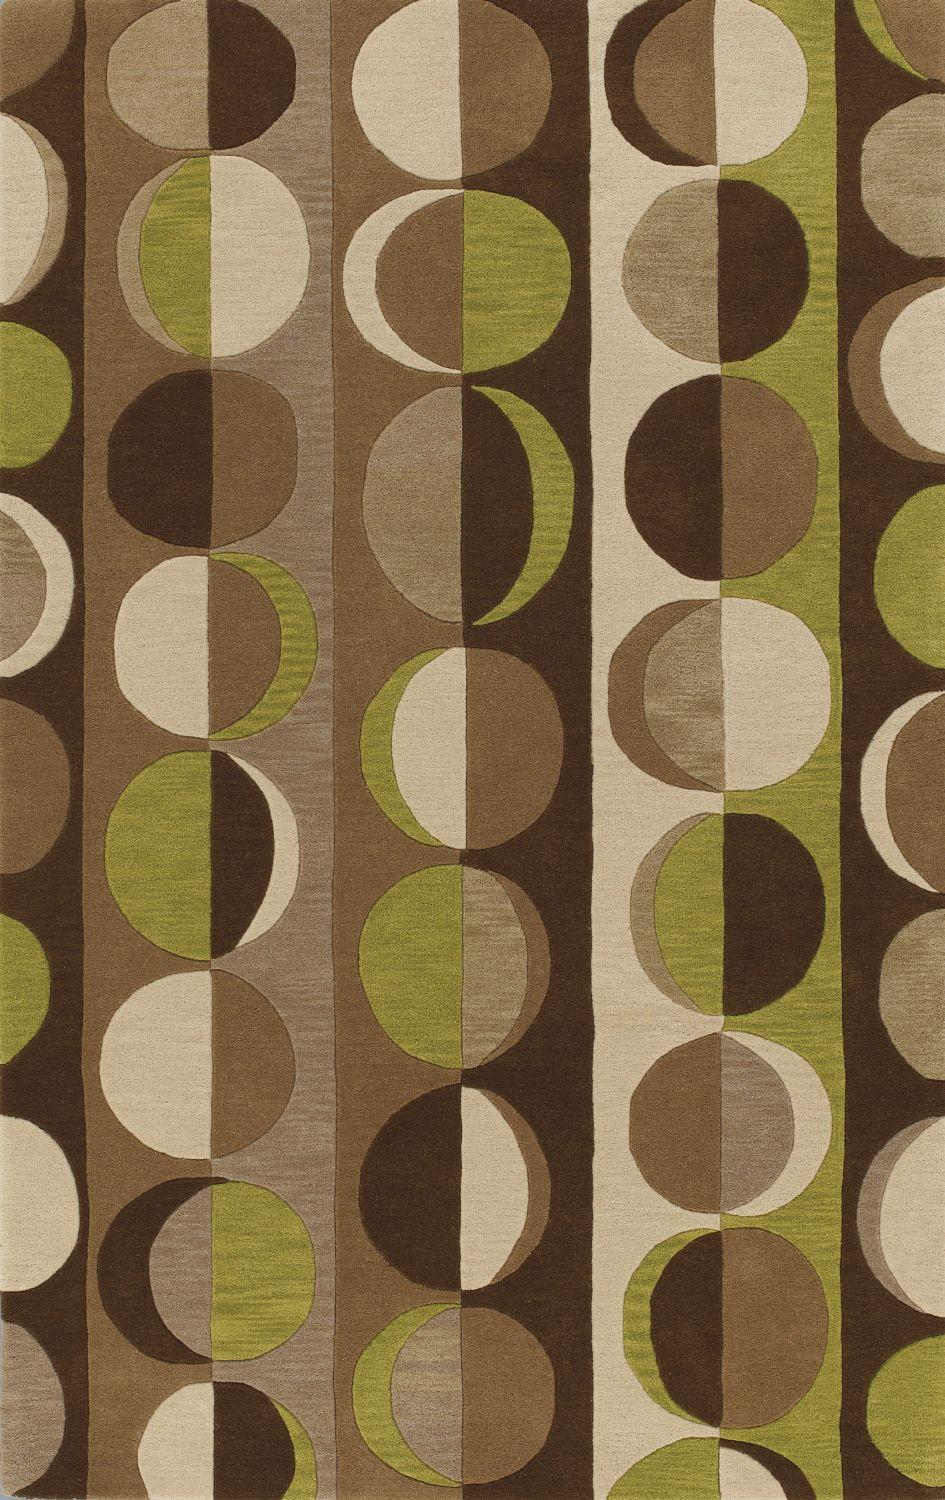 Super Area Rugs 5x7-5x8 Rug NEW Modern Area Rugs Contemporary Carpet SALE Wool Hand Tufted 5ft. X 7ft. 6in. Brown at Sears.com